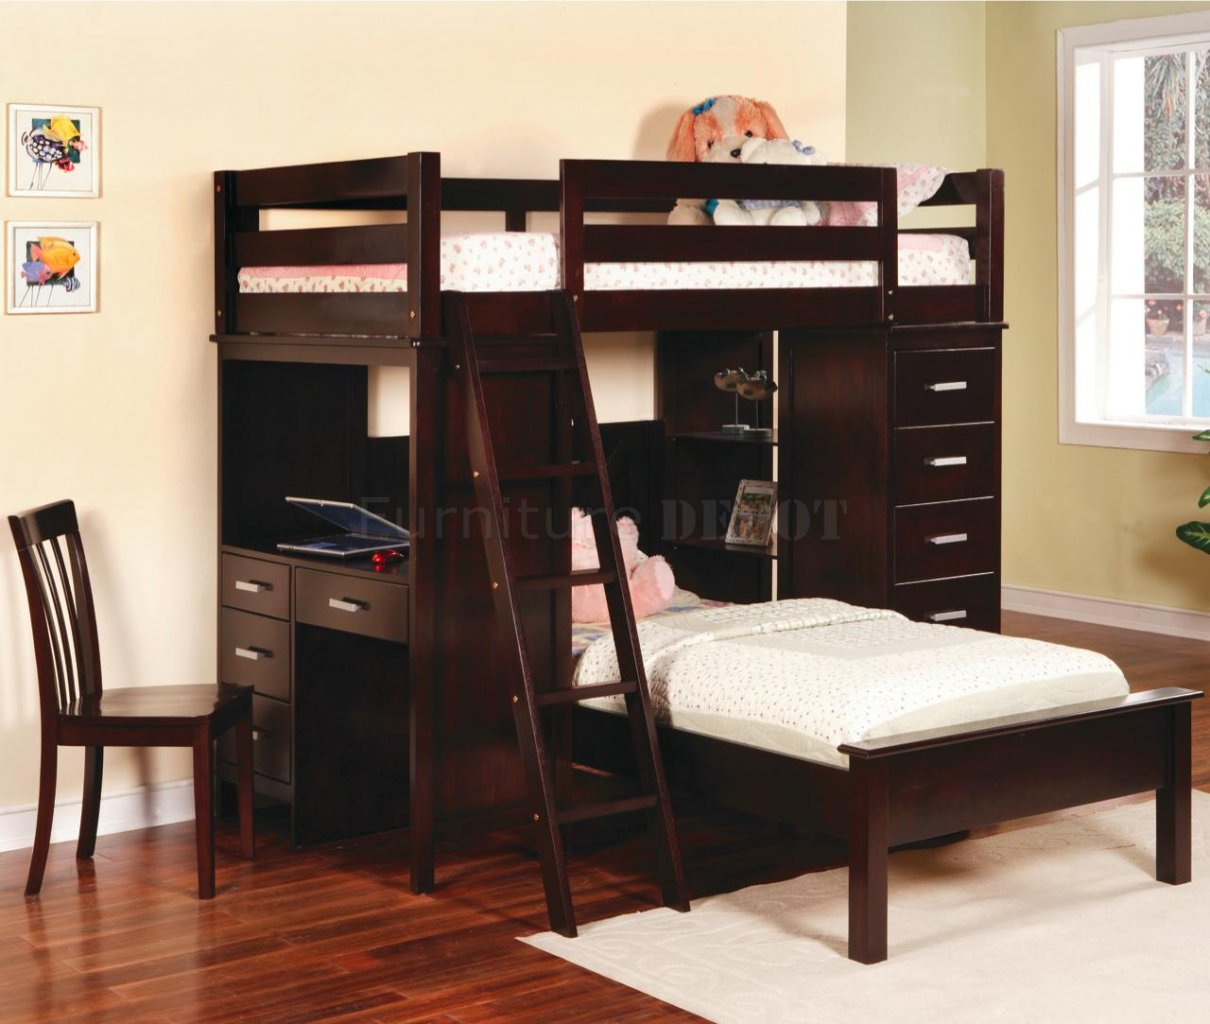 l with larger bed plans cherry beds jay bunk in desk furniture stair blueprints diy loft view